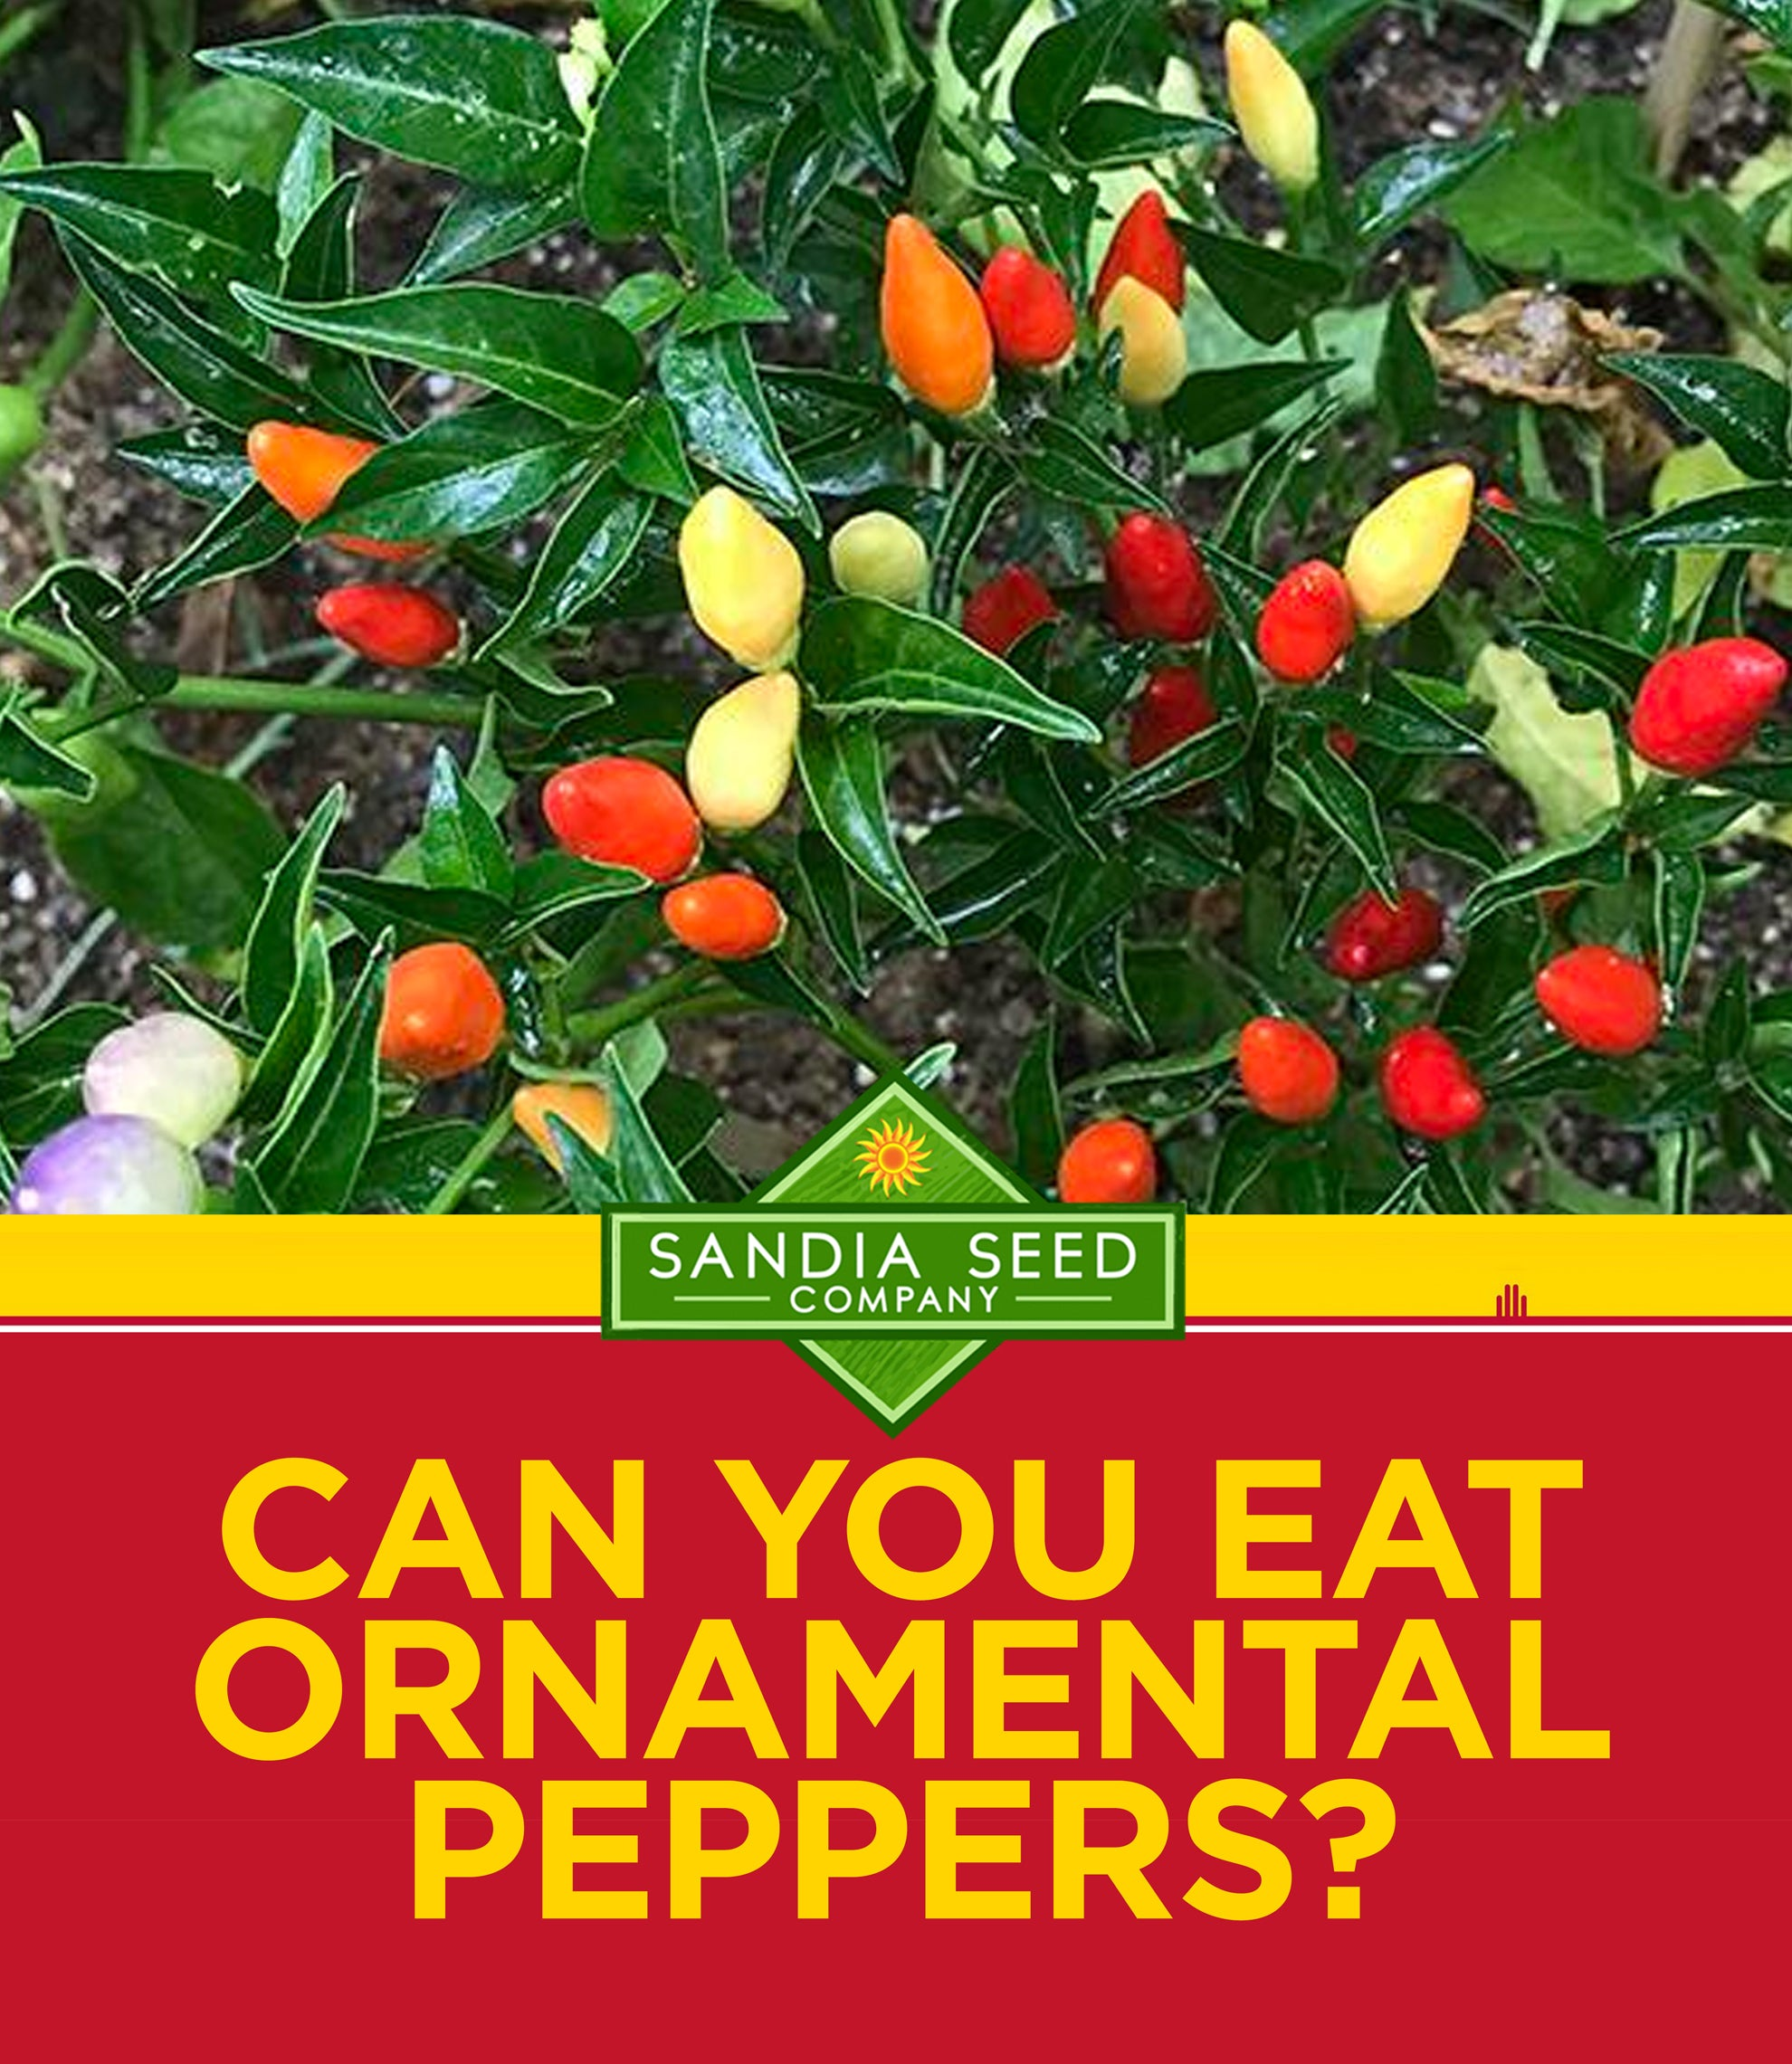 Can You Eat Ornamental Peppers?